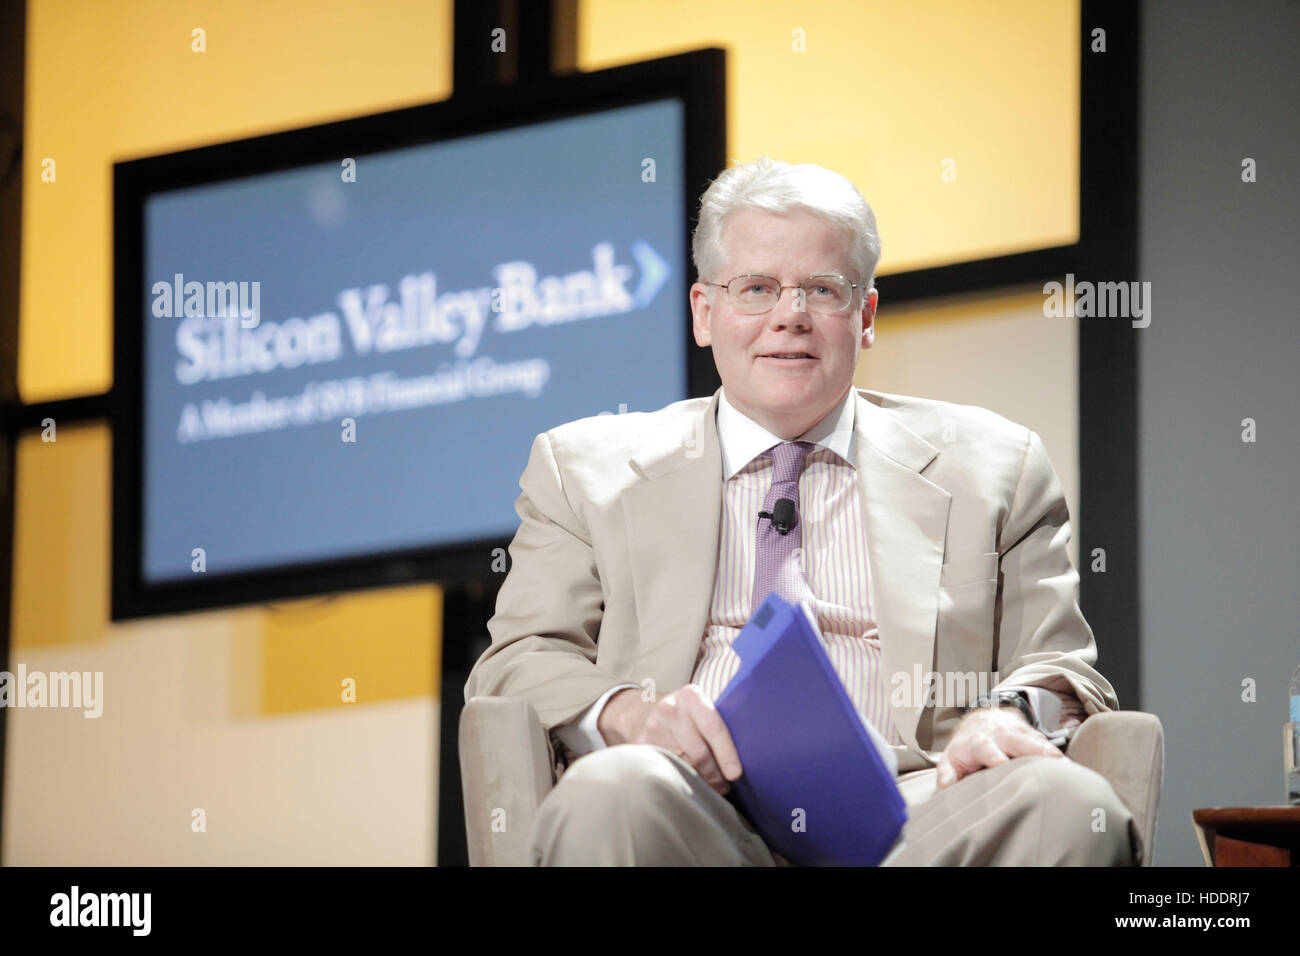 James Anderson, chief investment officer of Silicon Valley Bank, speaks during the 2010 Ernst & Young Strategic - Stock Image